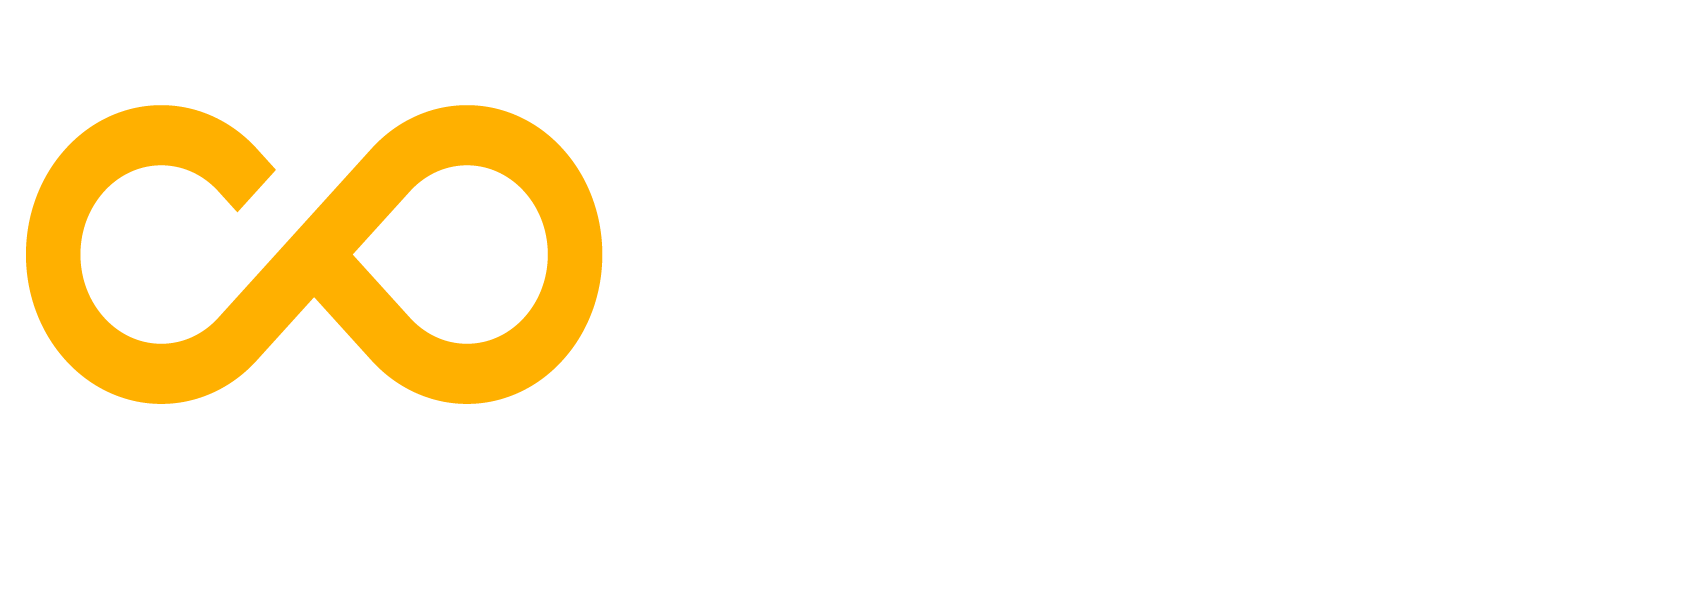 IANS-Logo-Yellow-wt